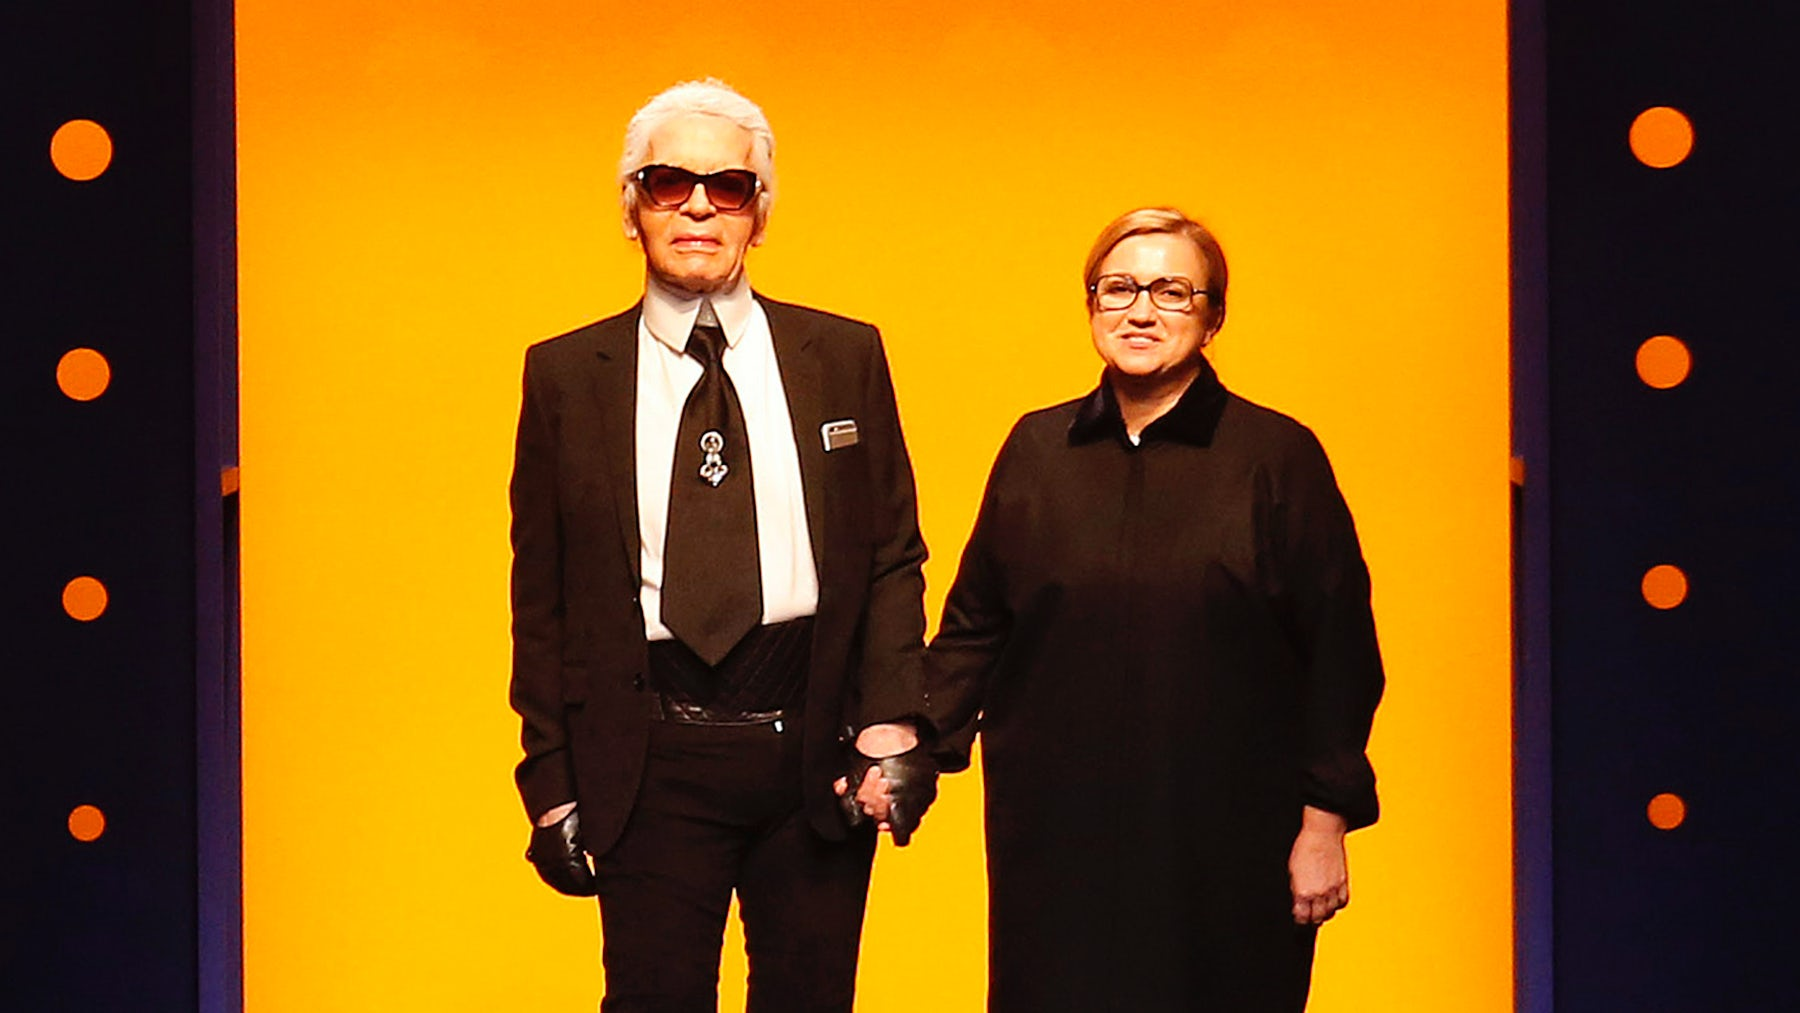 Karl Lagerfeld and Silvia Fendi at Fendi's Autumn/Winter 2016 show | Source: Indigital